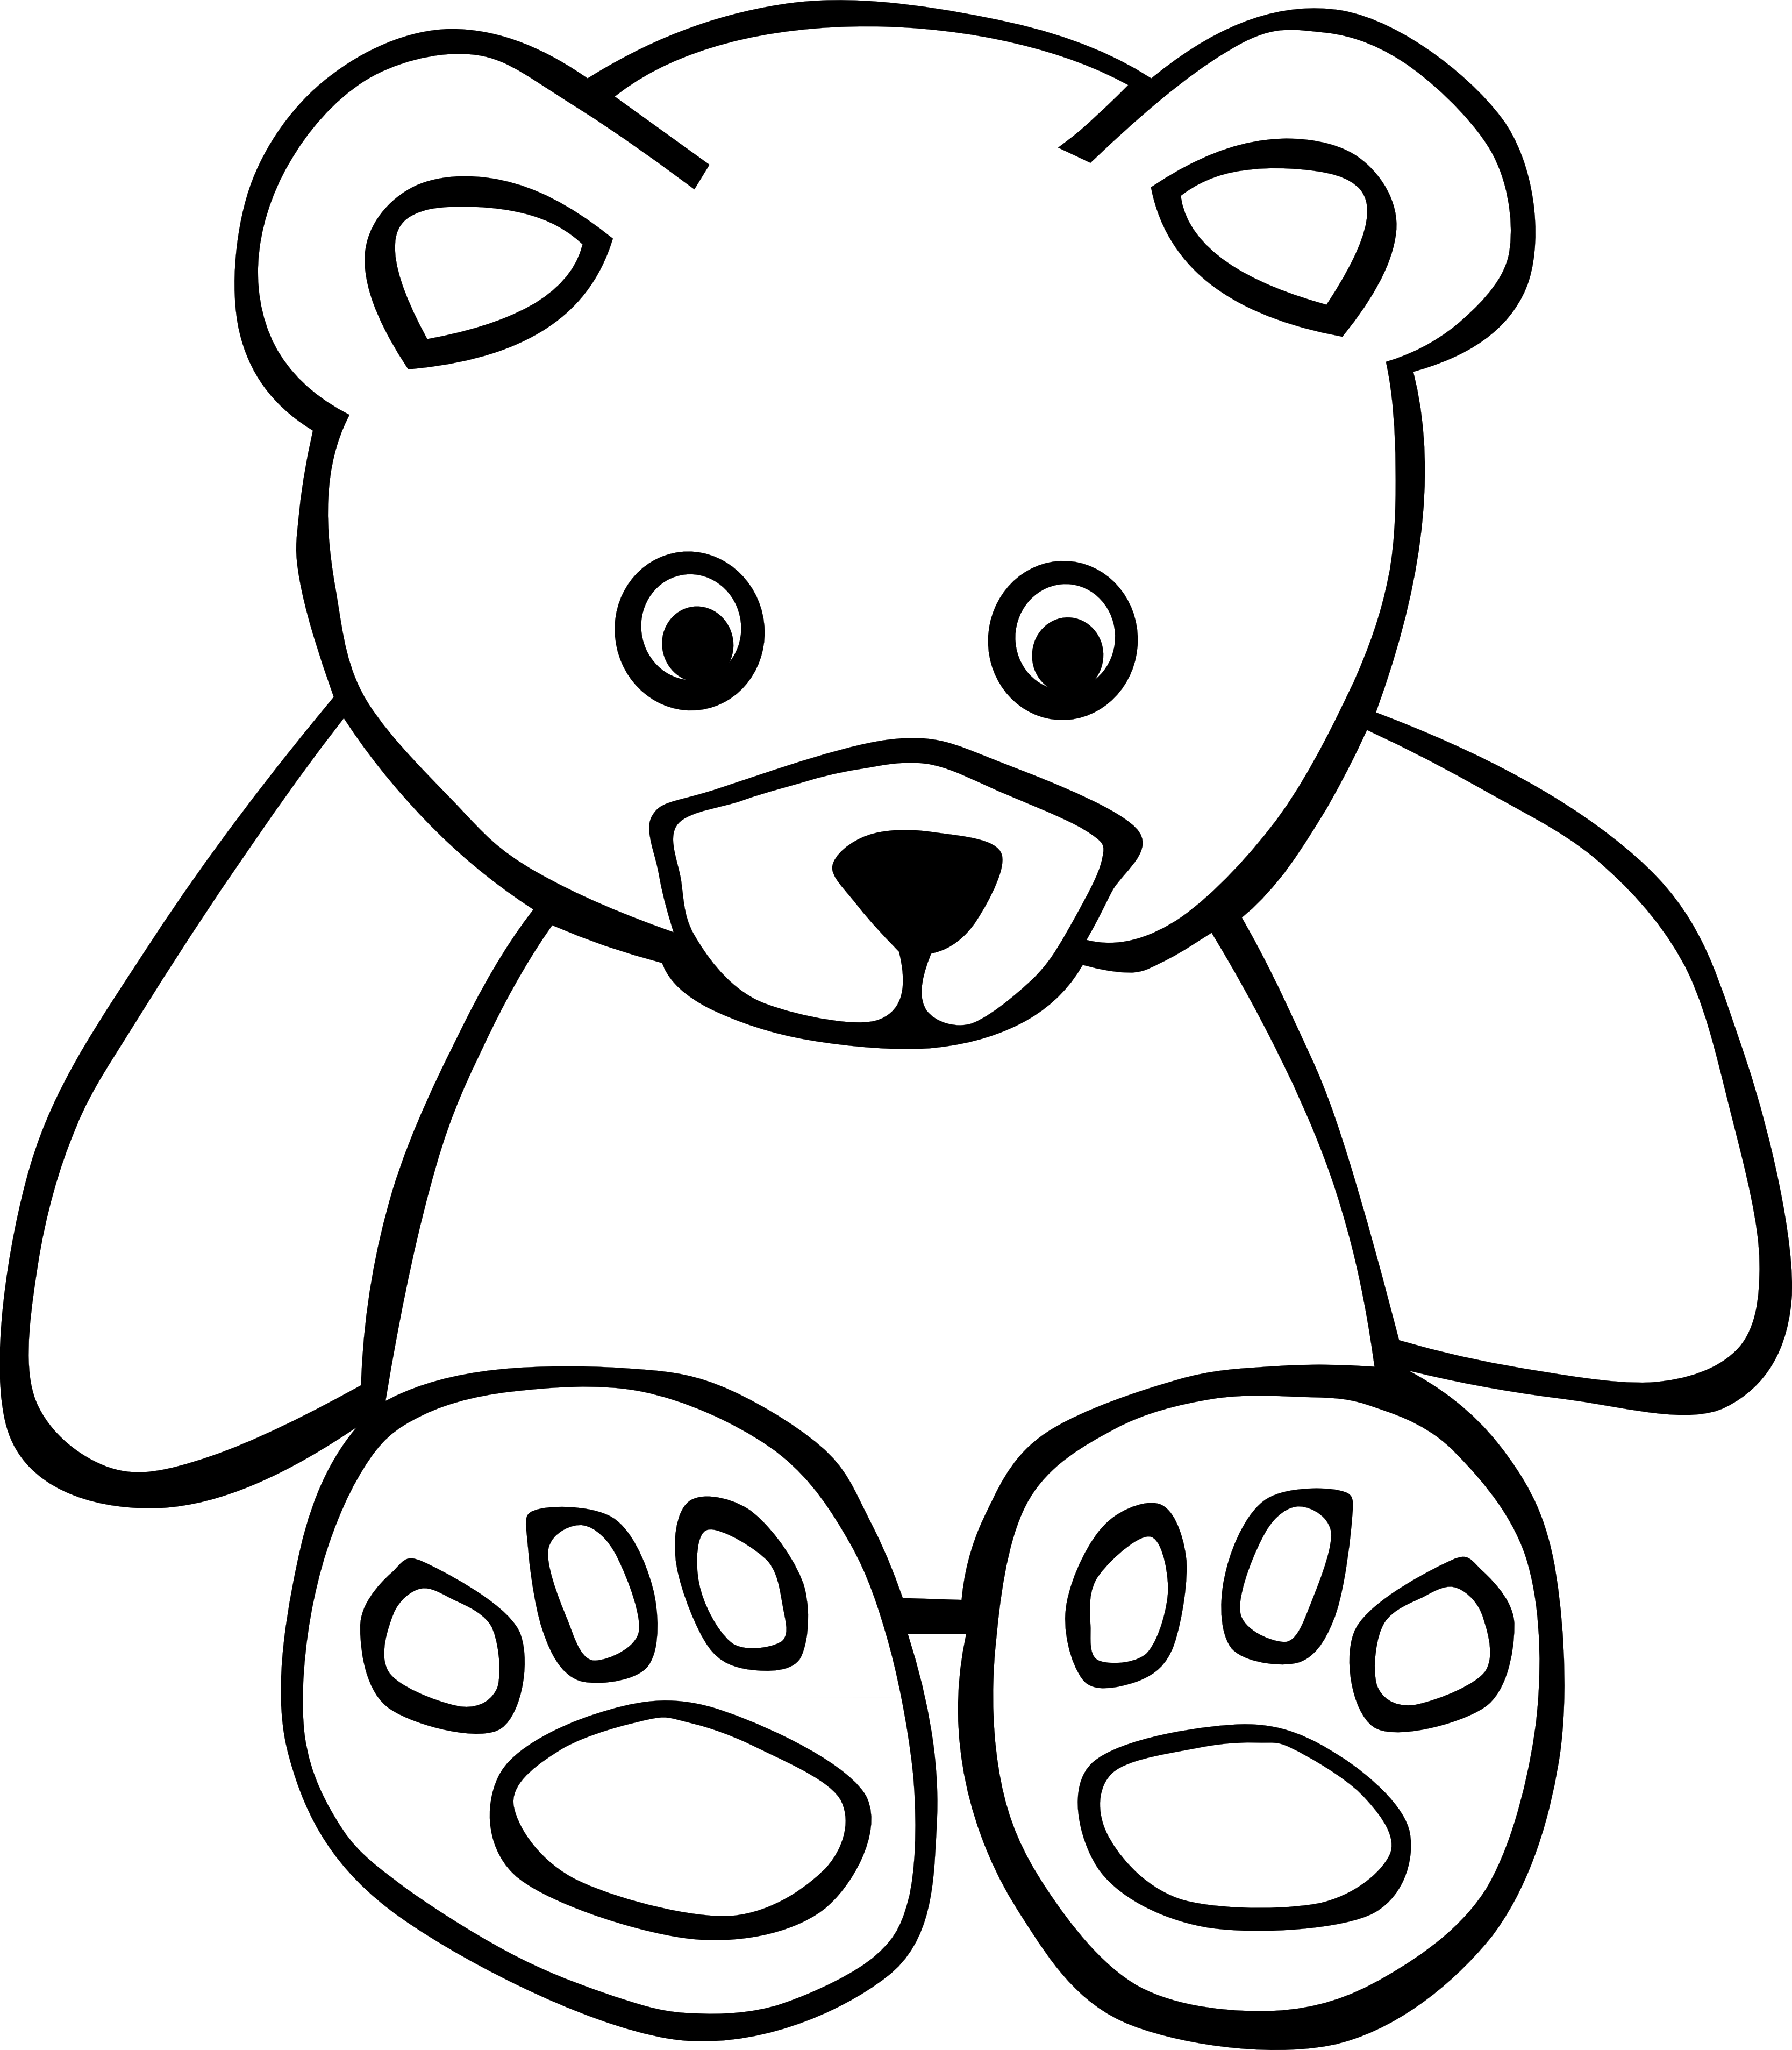 clip royalty free Png teddy transparent free. Baby bear clipart black and white